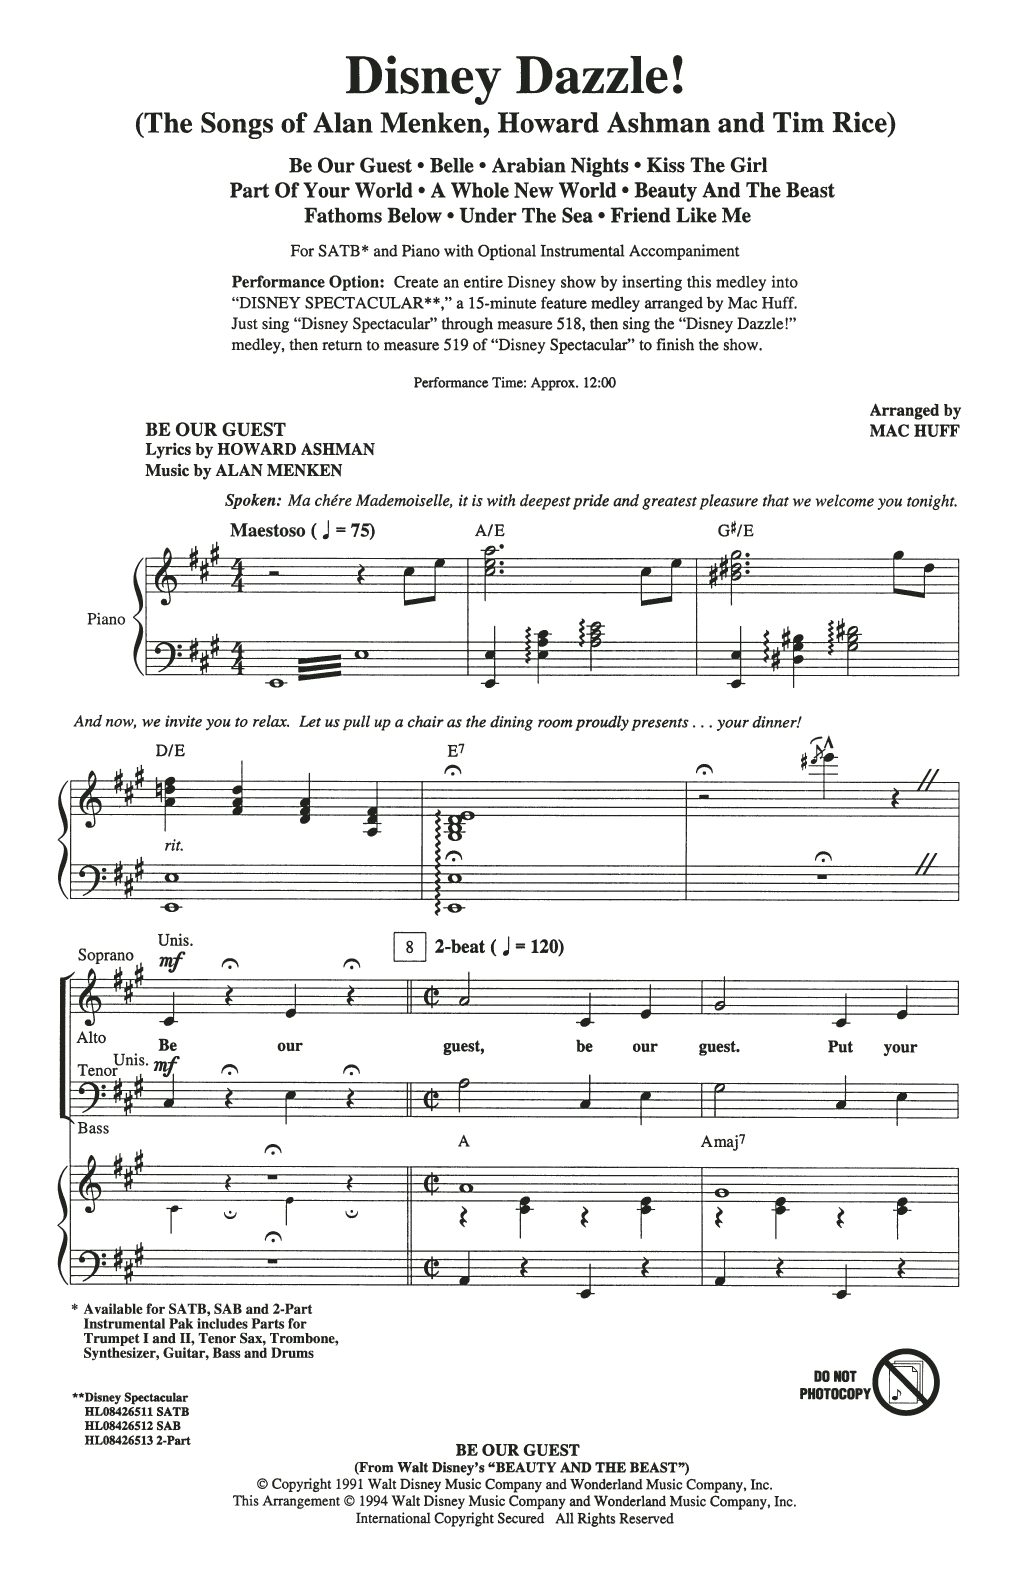 Download Mac Huff 'Disney Dazzle! (The Songs of Alan Menken, Howard Ashman and Tim Rice) (Medley)' Digital Sheet Music Notes & Chords and start playing in minutes